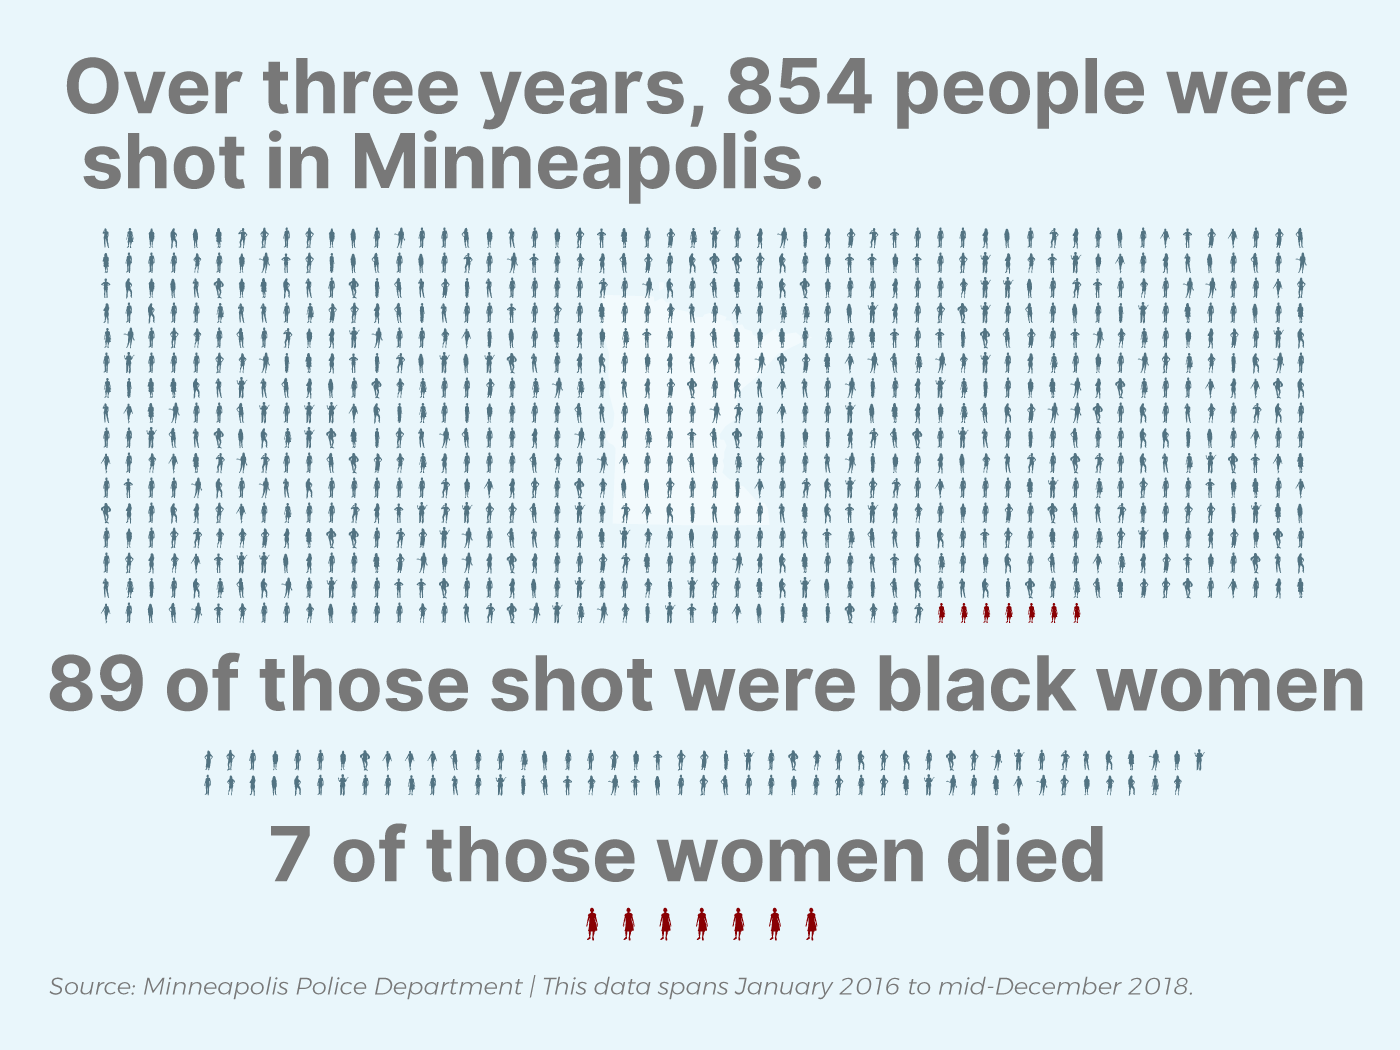 Over three years in Minneapolis 854 people were shot